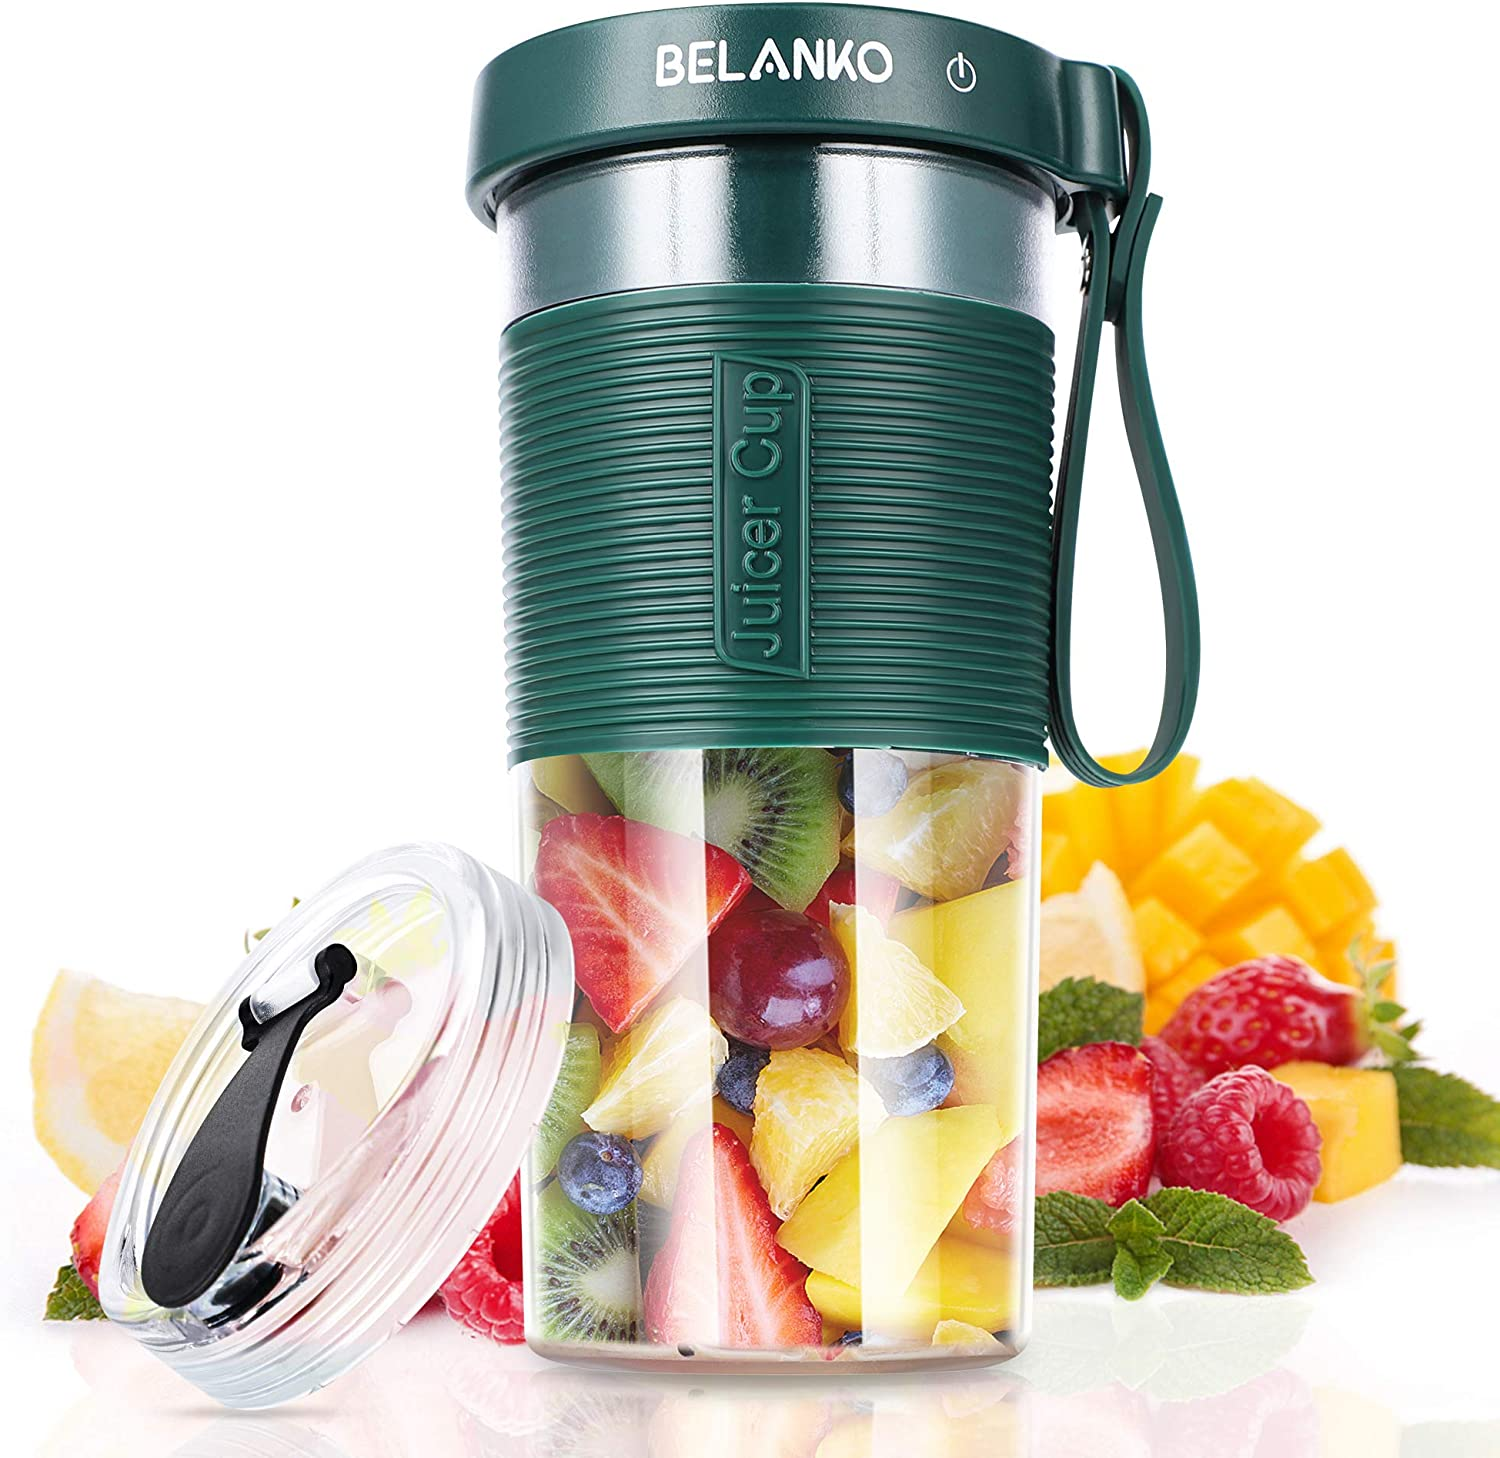 Portable Blender, BELANKO Personal Size Blender for Juice, Shakes and Smoothies, Food Grade Juicer Travel Blender Cup 320/600 ML 60W with USB Rechargeable for Home, Sport, Office, Outdoors - Dark Green